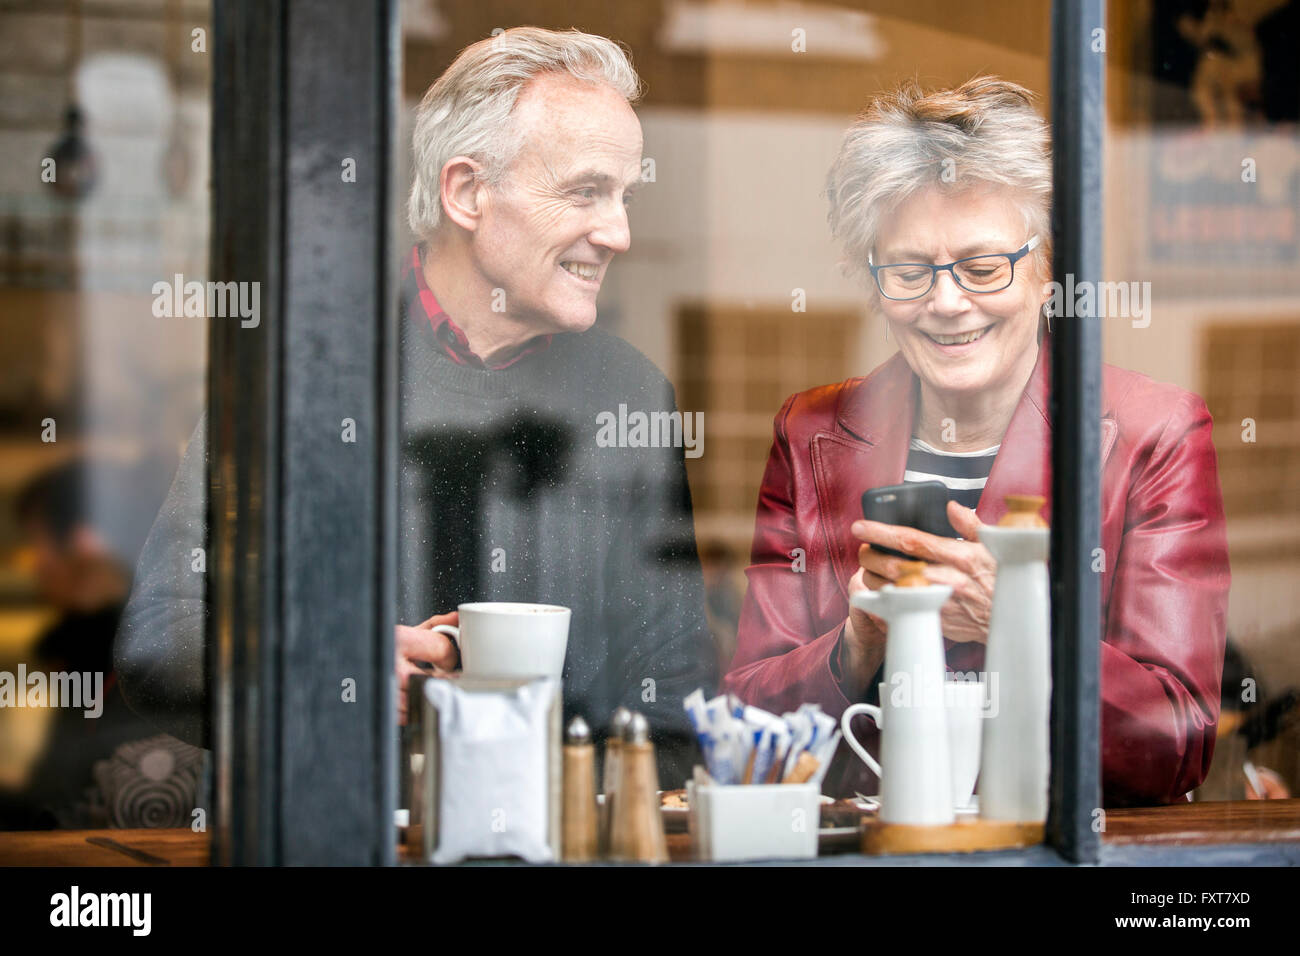 Senior couple in cafe window seat drinking coffee and texting on smartphone Stock Photo